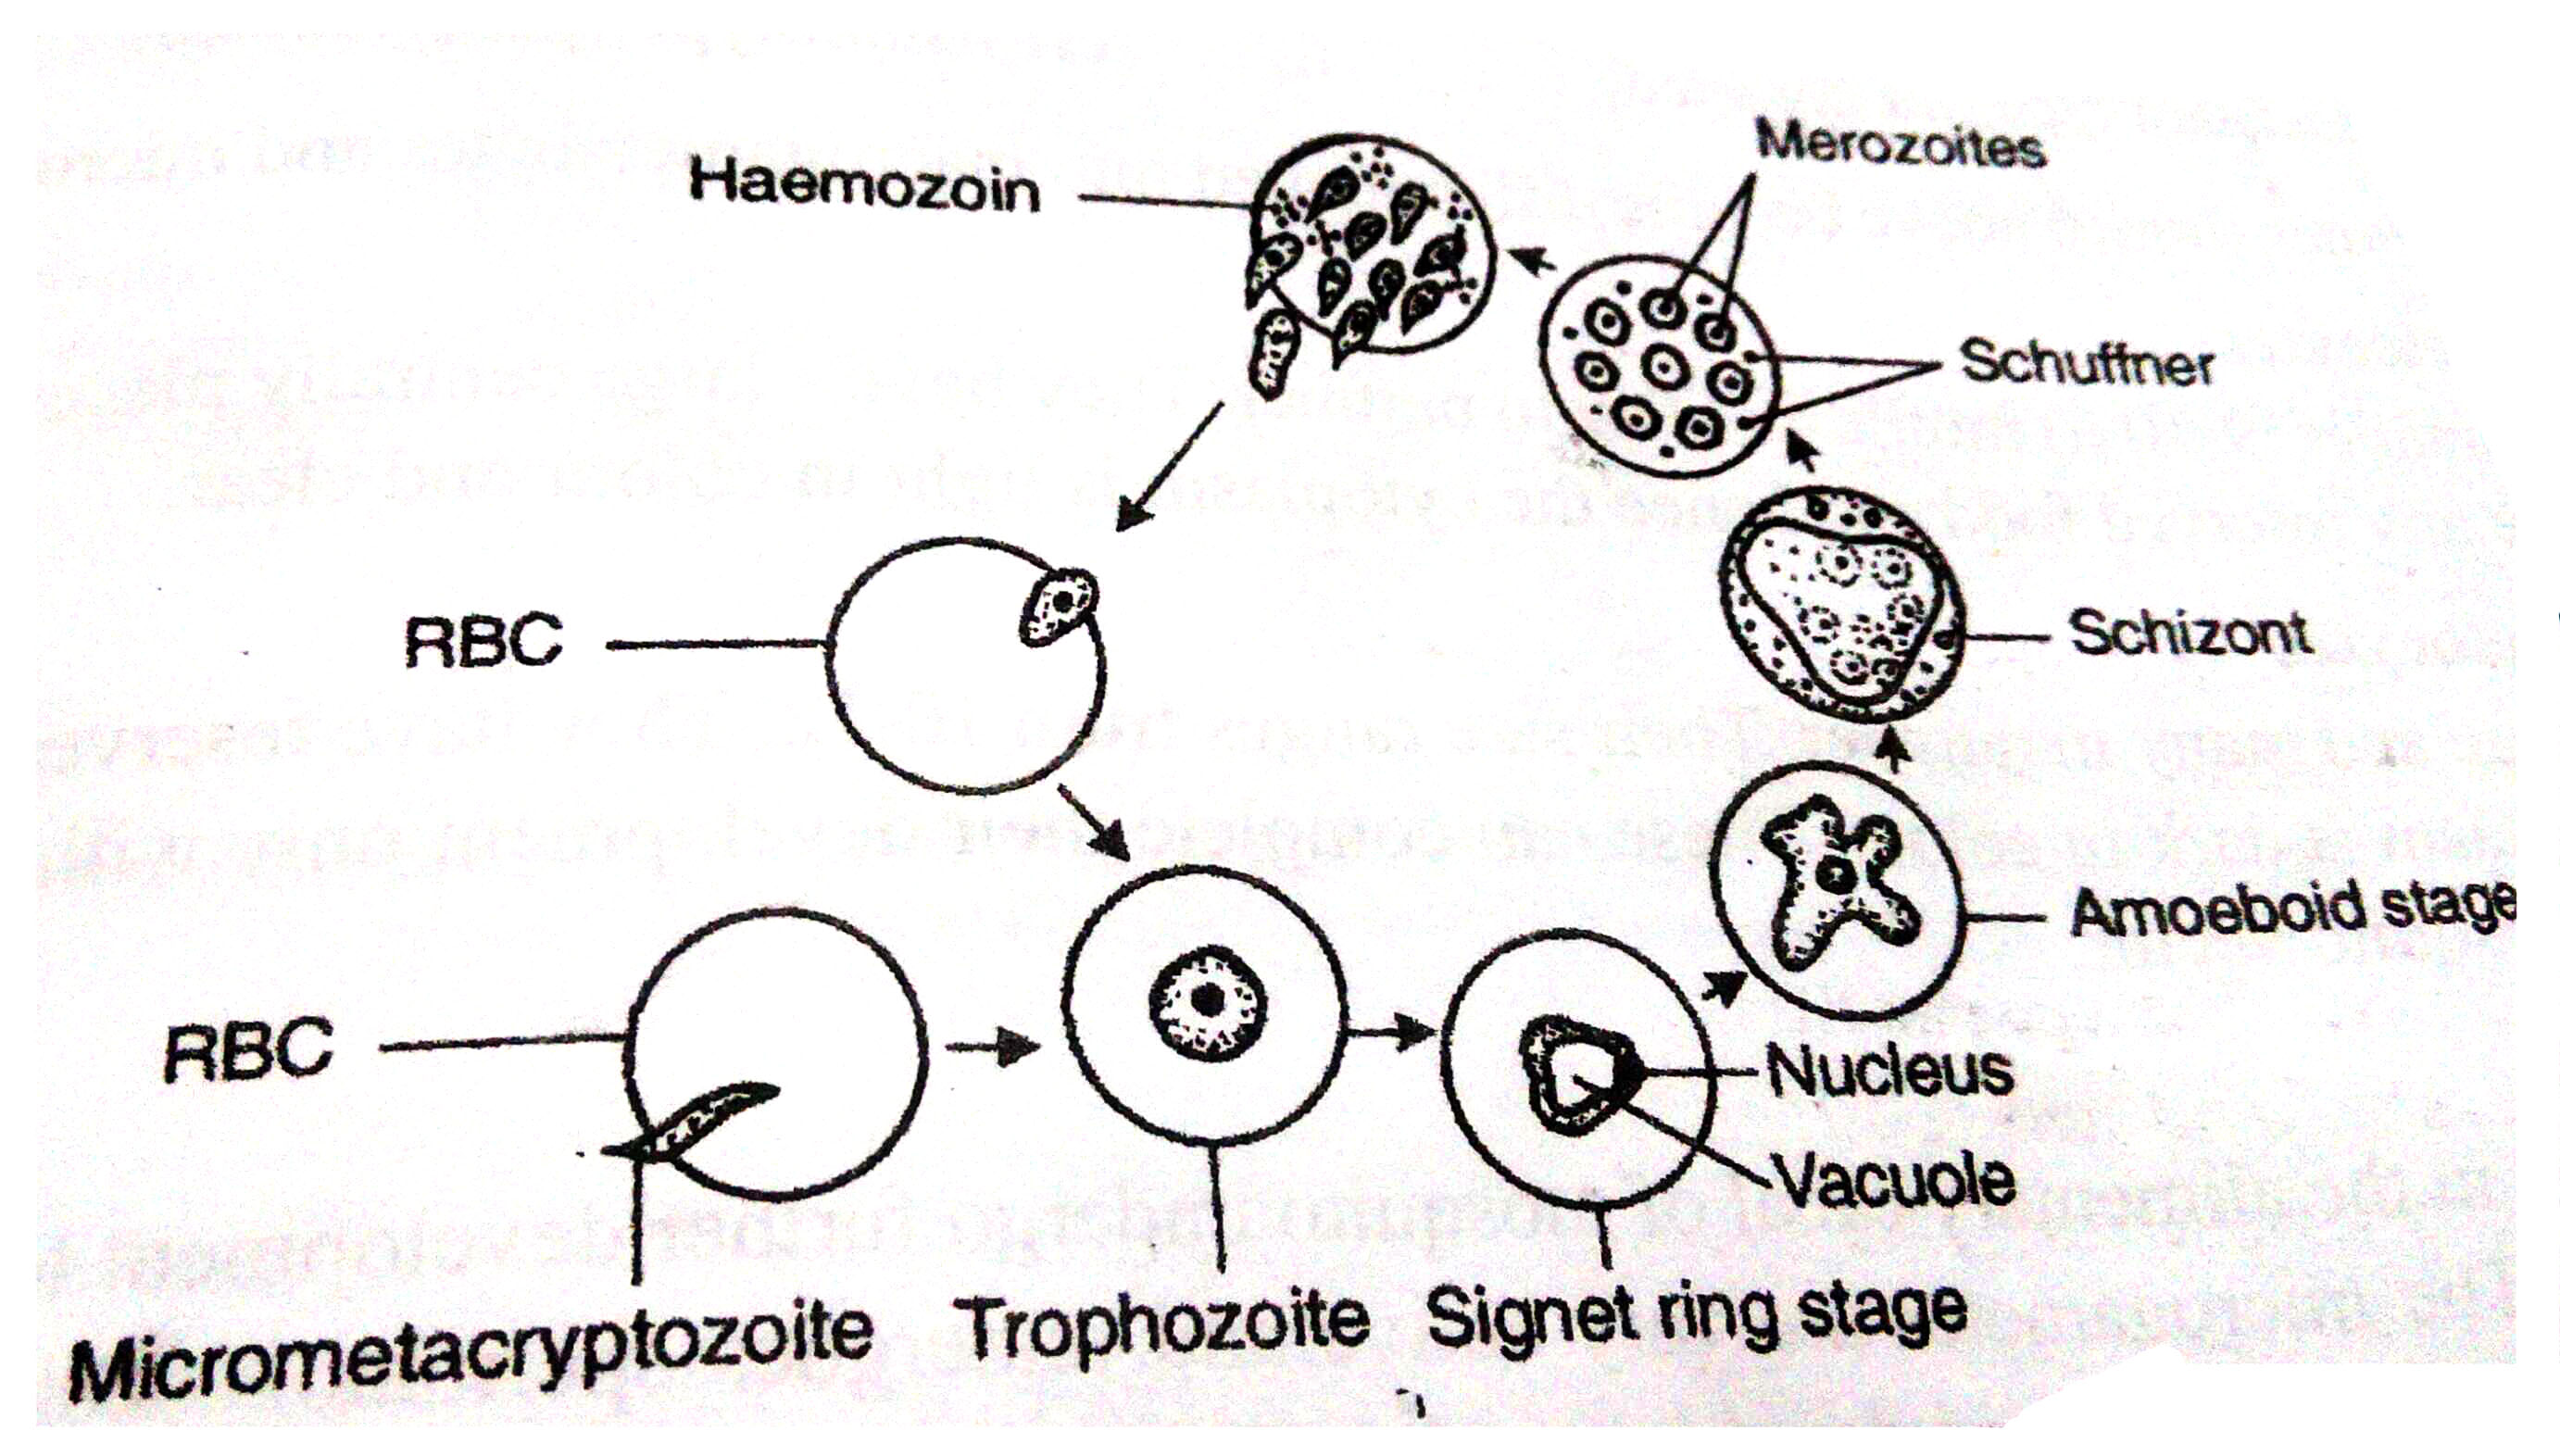 Asexual life cycle of plasmodium vivax ring